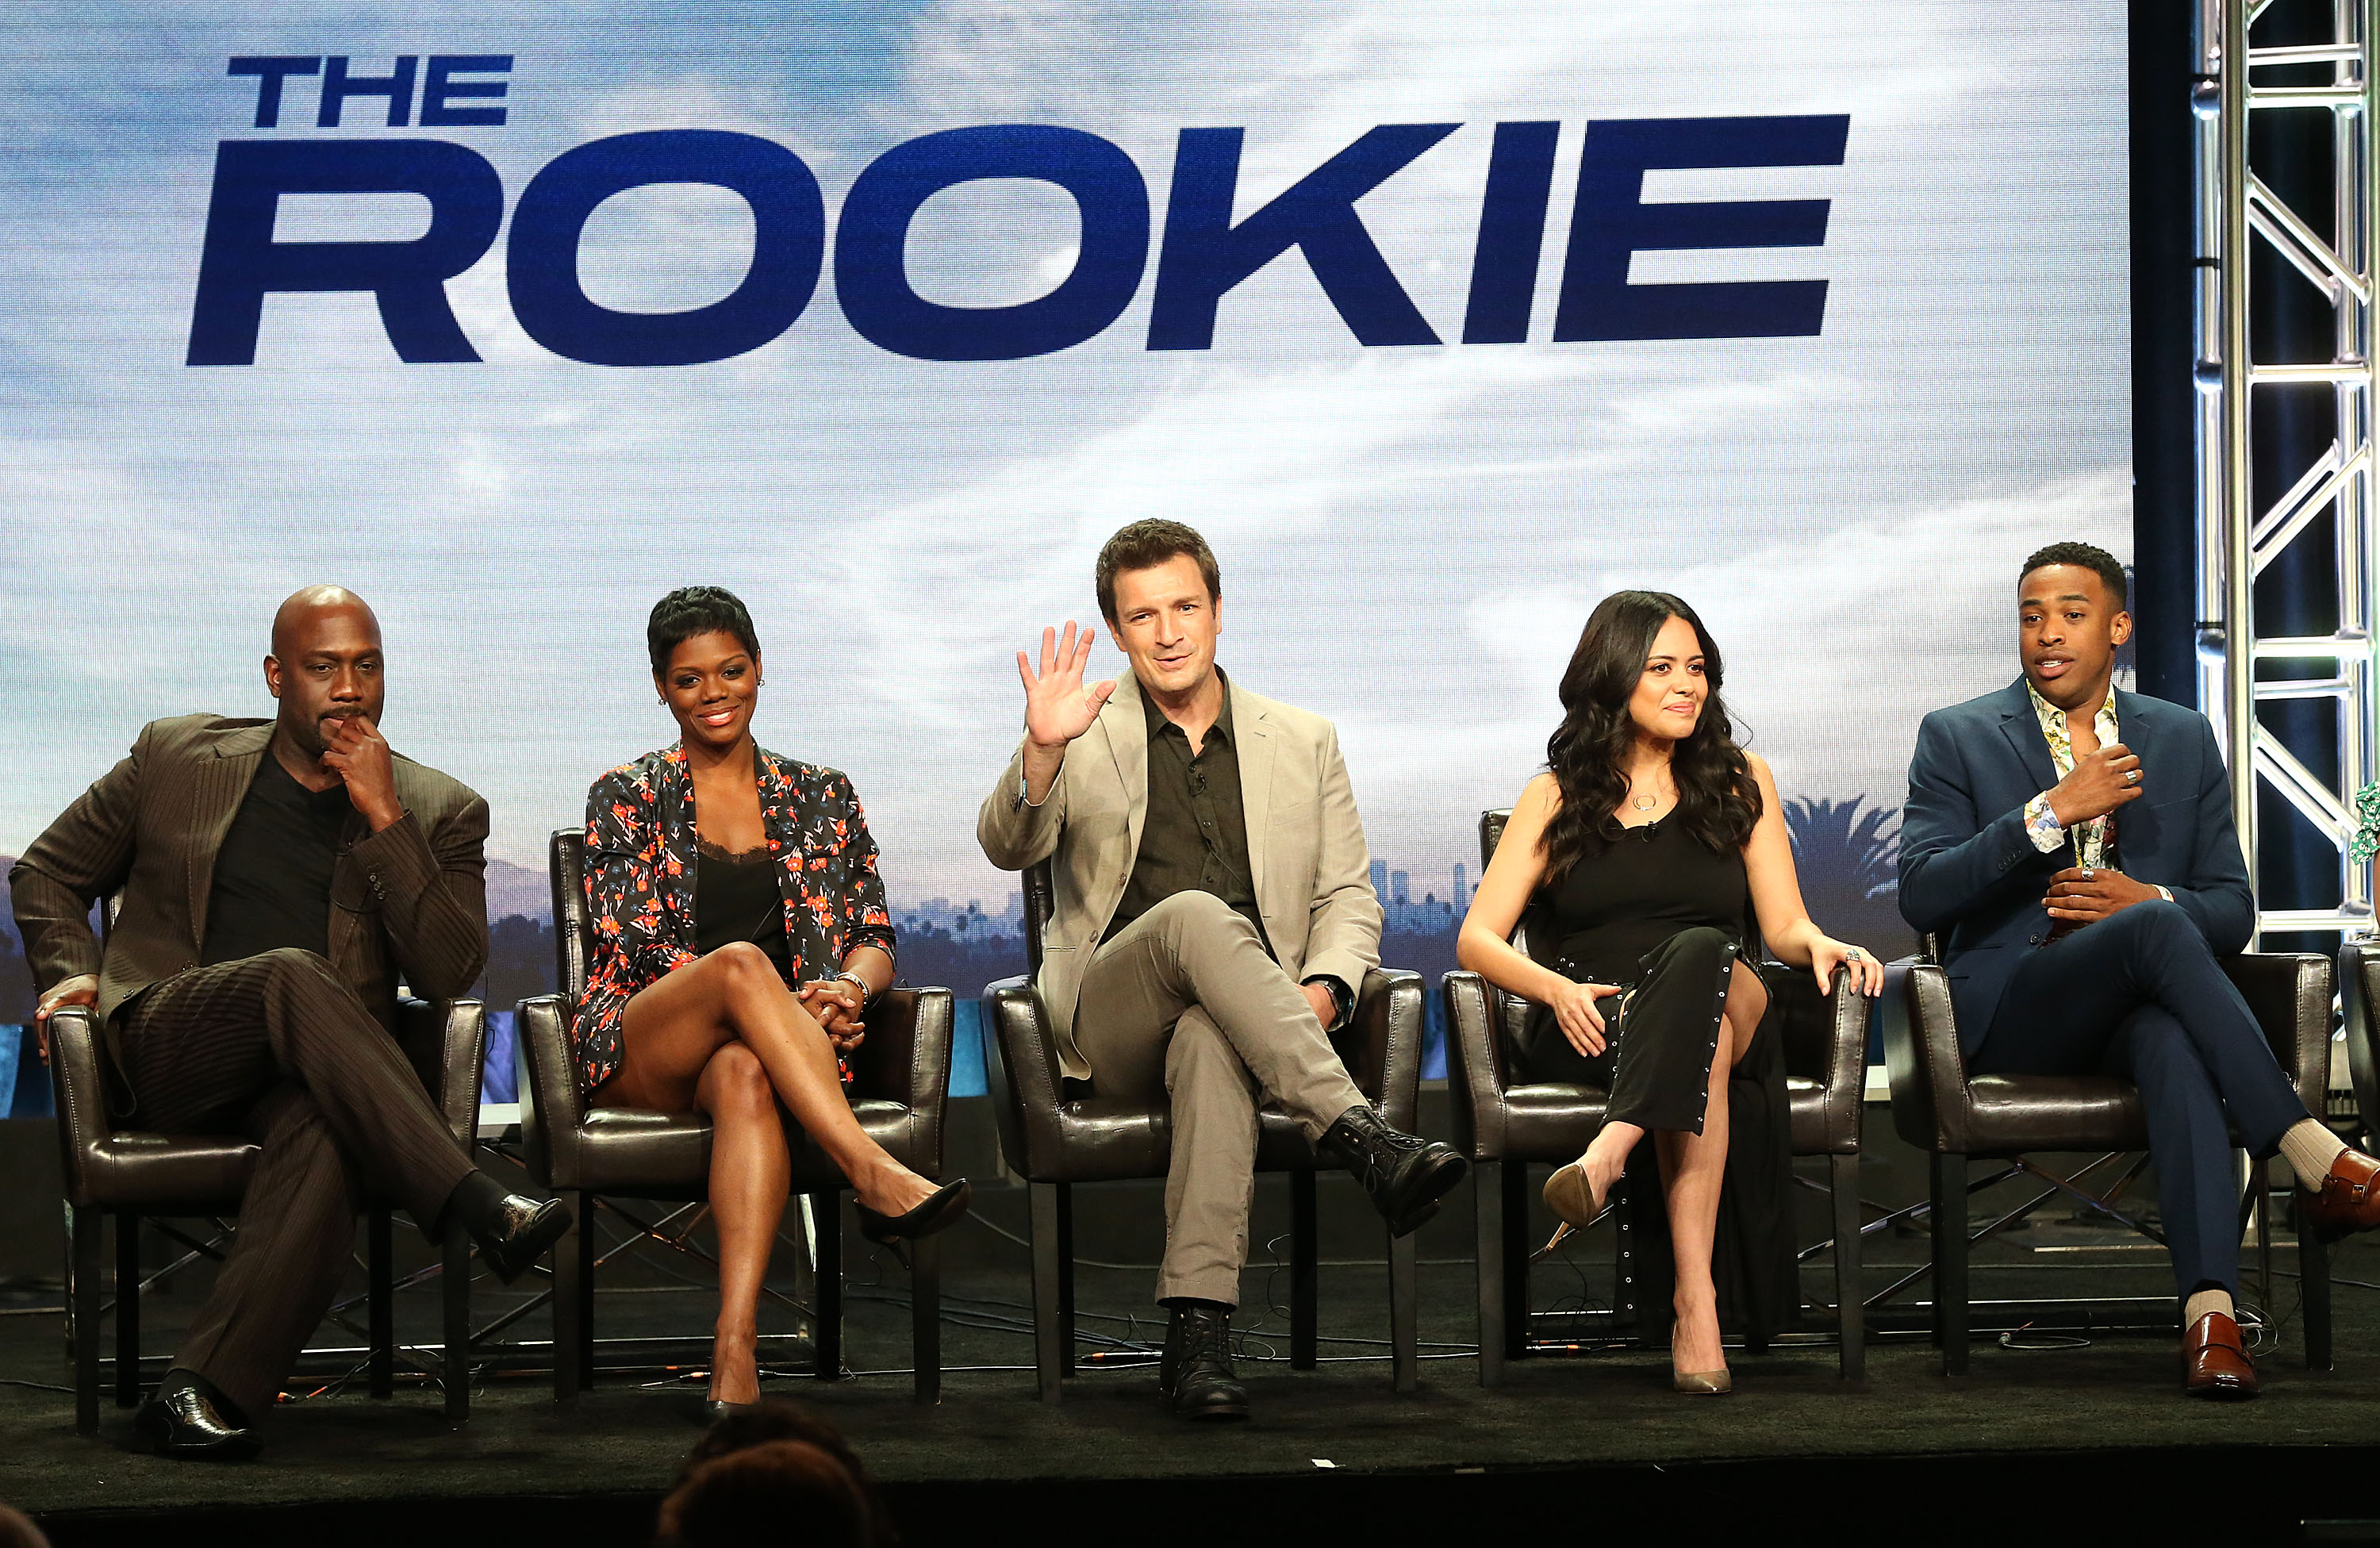 (L-R) Actor Richard T. Jones, actress Afton Williams, actor Nathan Fillion, actress Alyssa Diaz, and actor Titus Makin, Jr., of the television show 'The Rookie' speak during the Disney/ABC segment of the Summer 2018 Television Critics Association Press Tour at the Beverly Hilton Hotel on August 7, 2018 in Beverly Hills, California.